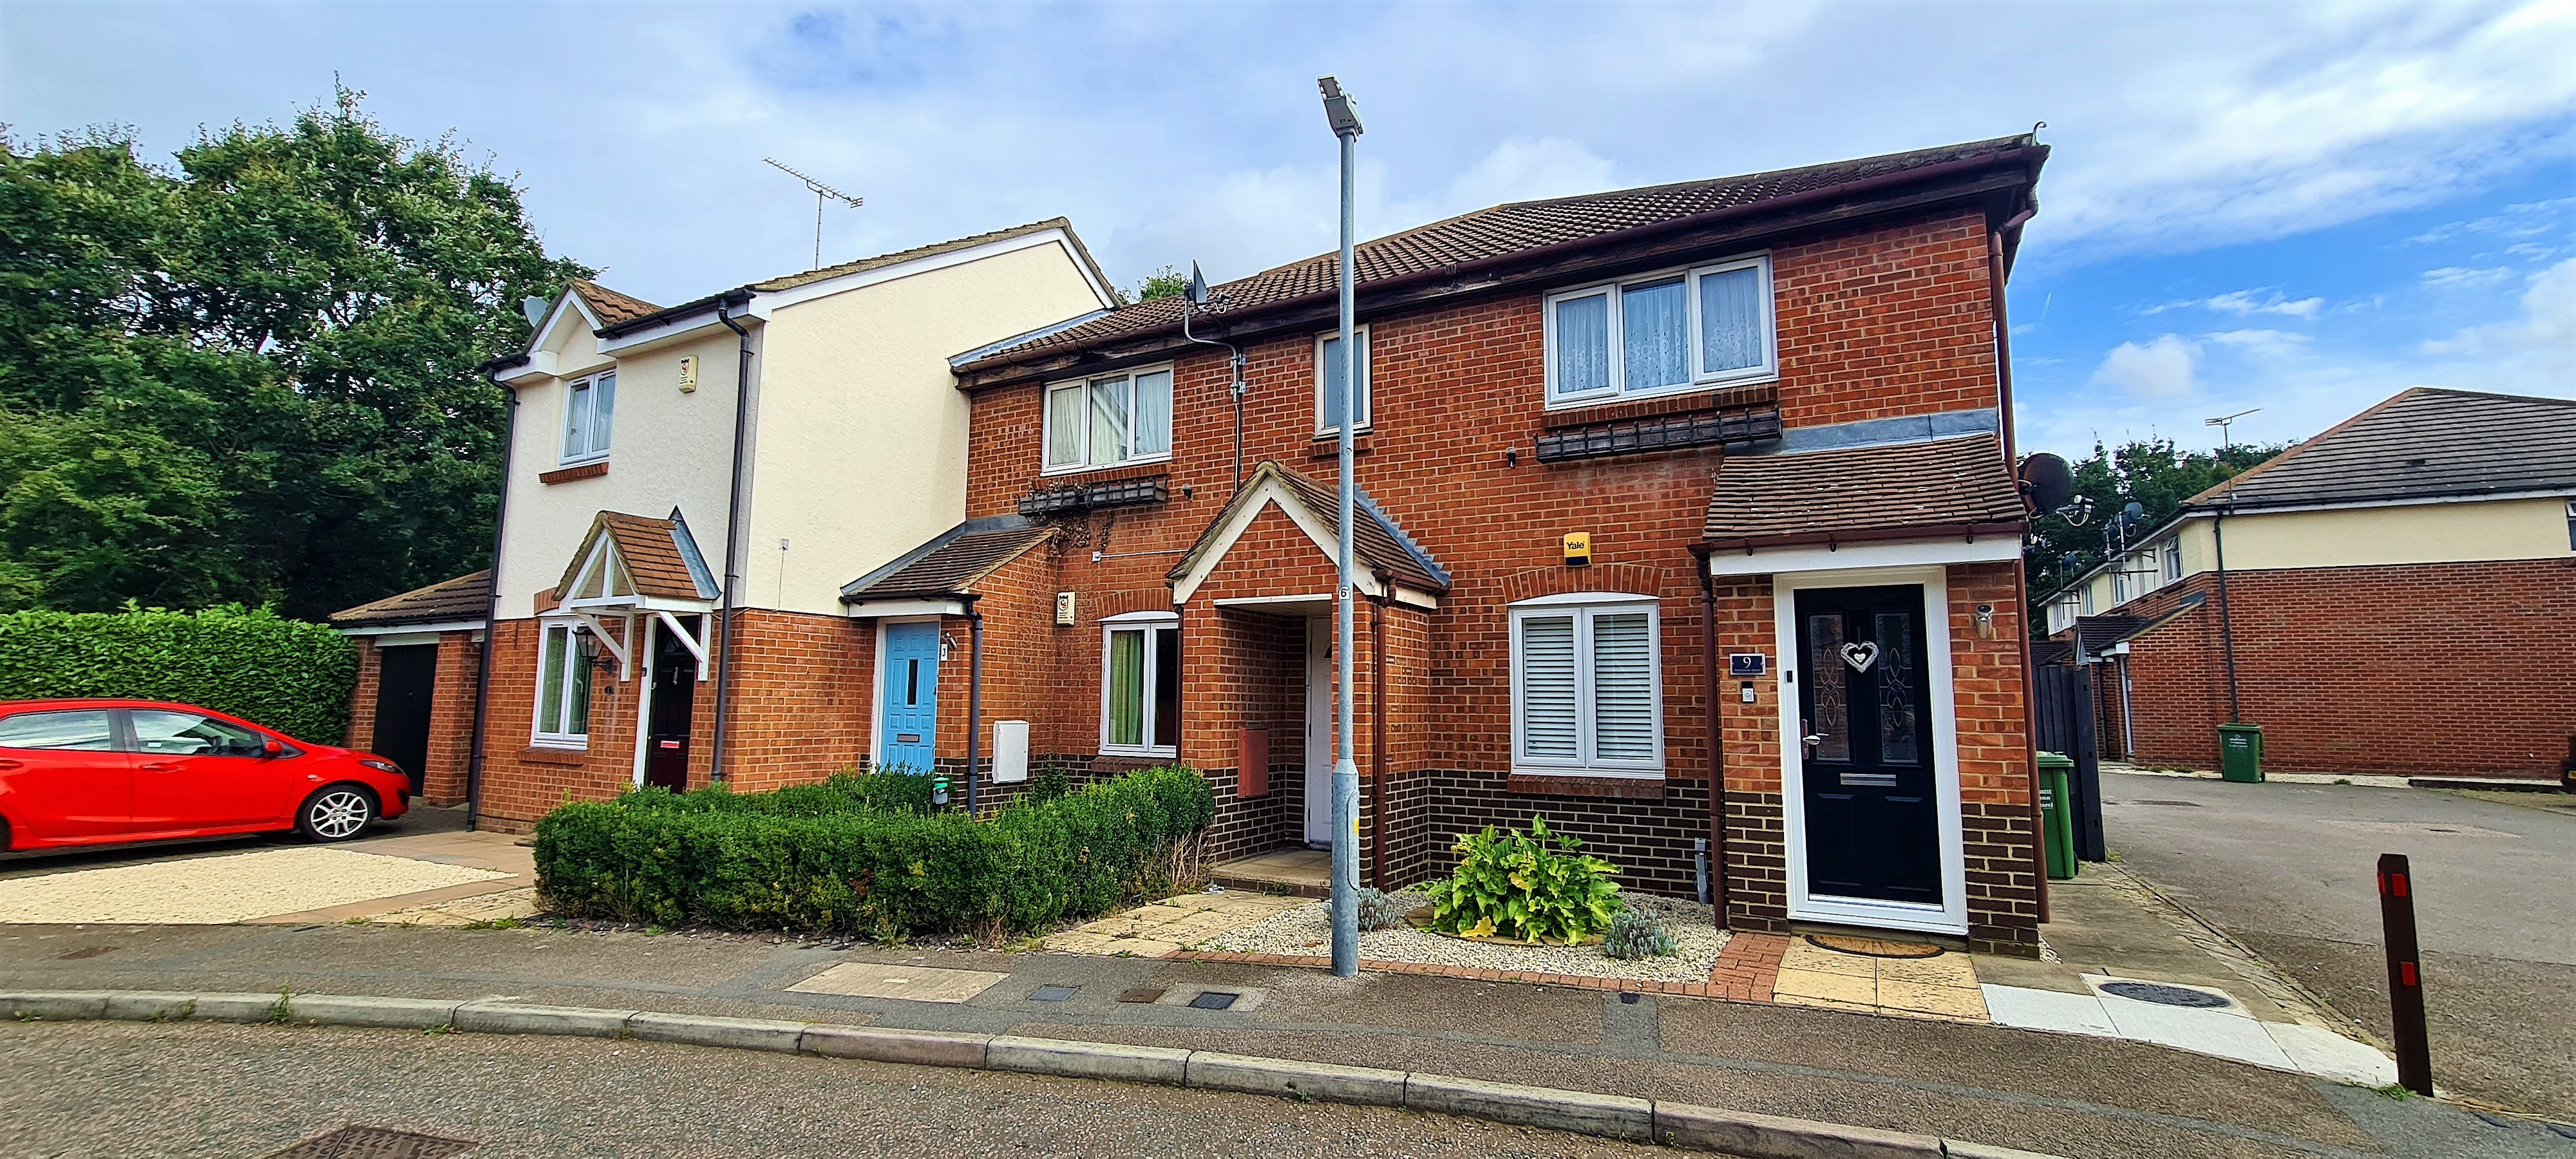 1 bed flat for sale in Maitland Road, Wickford  - Property Image 1